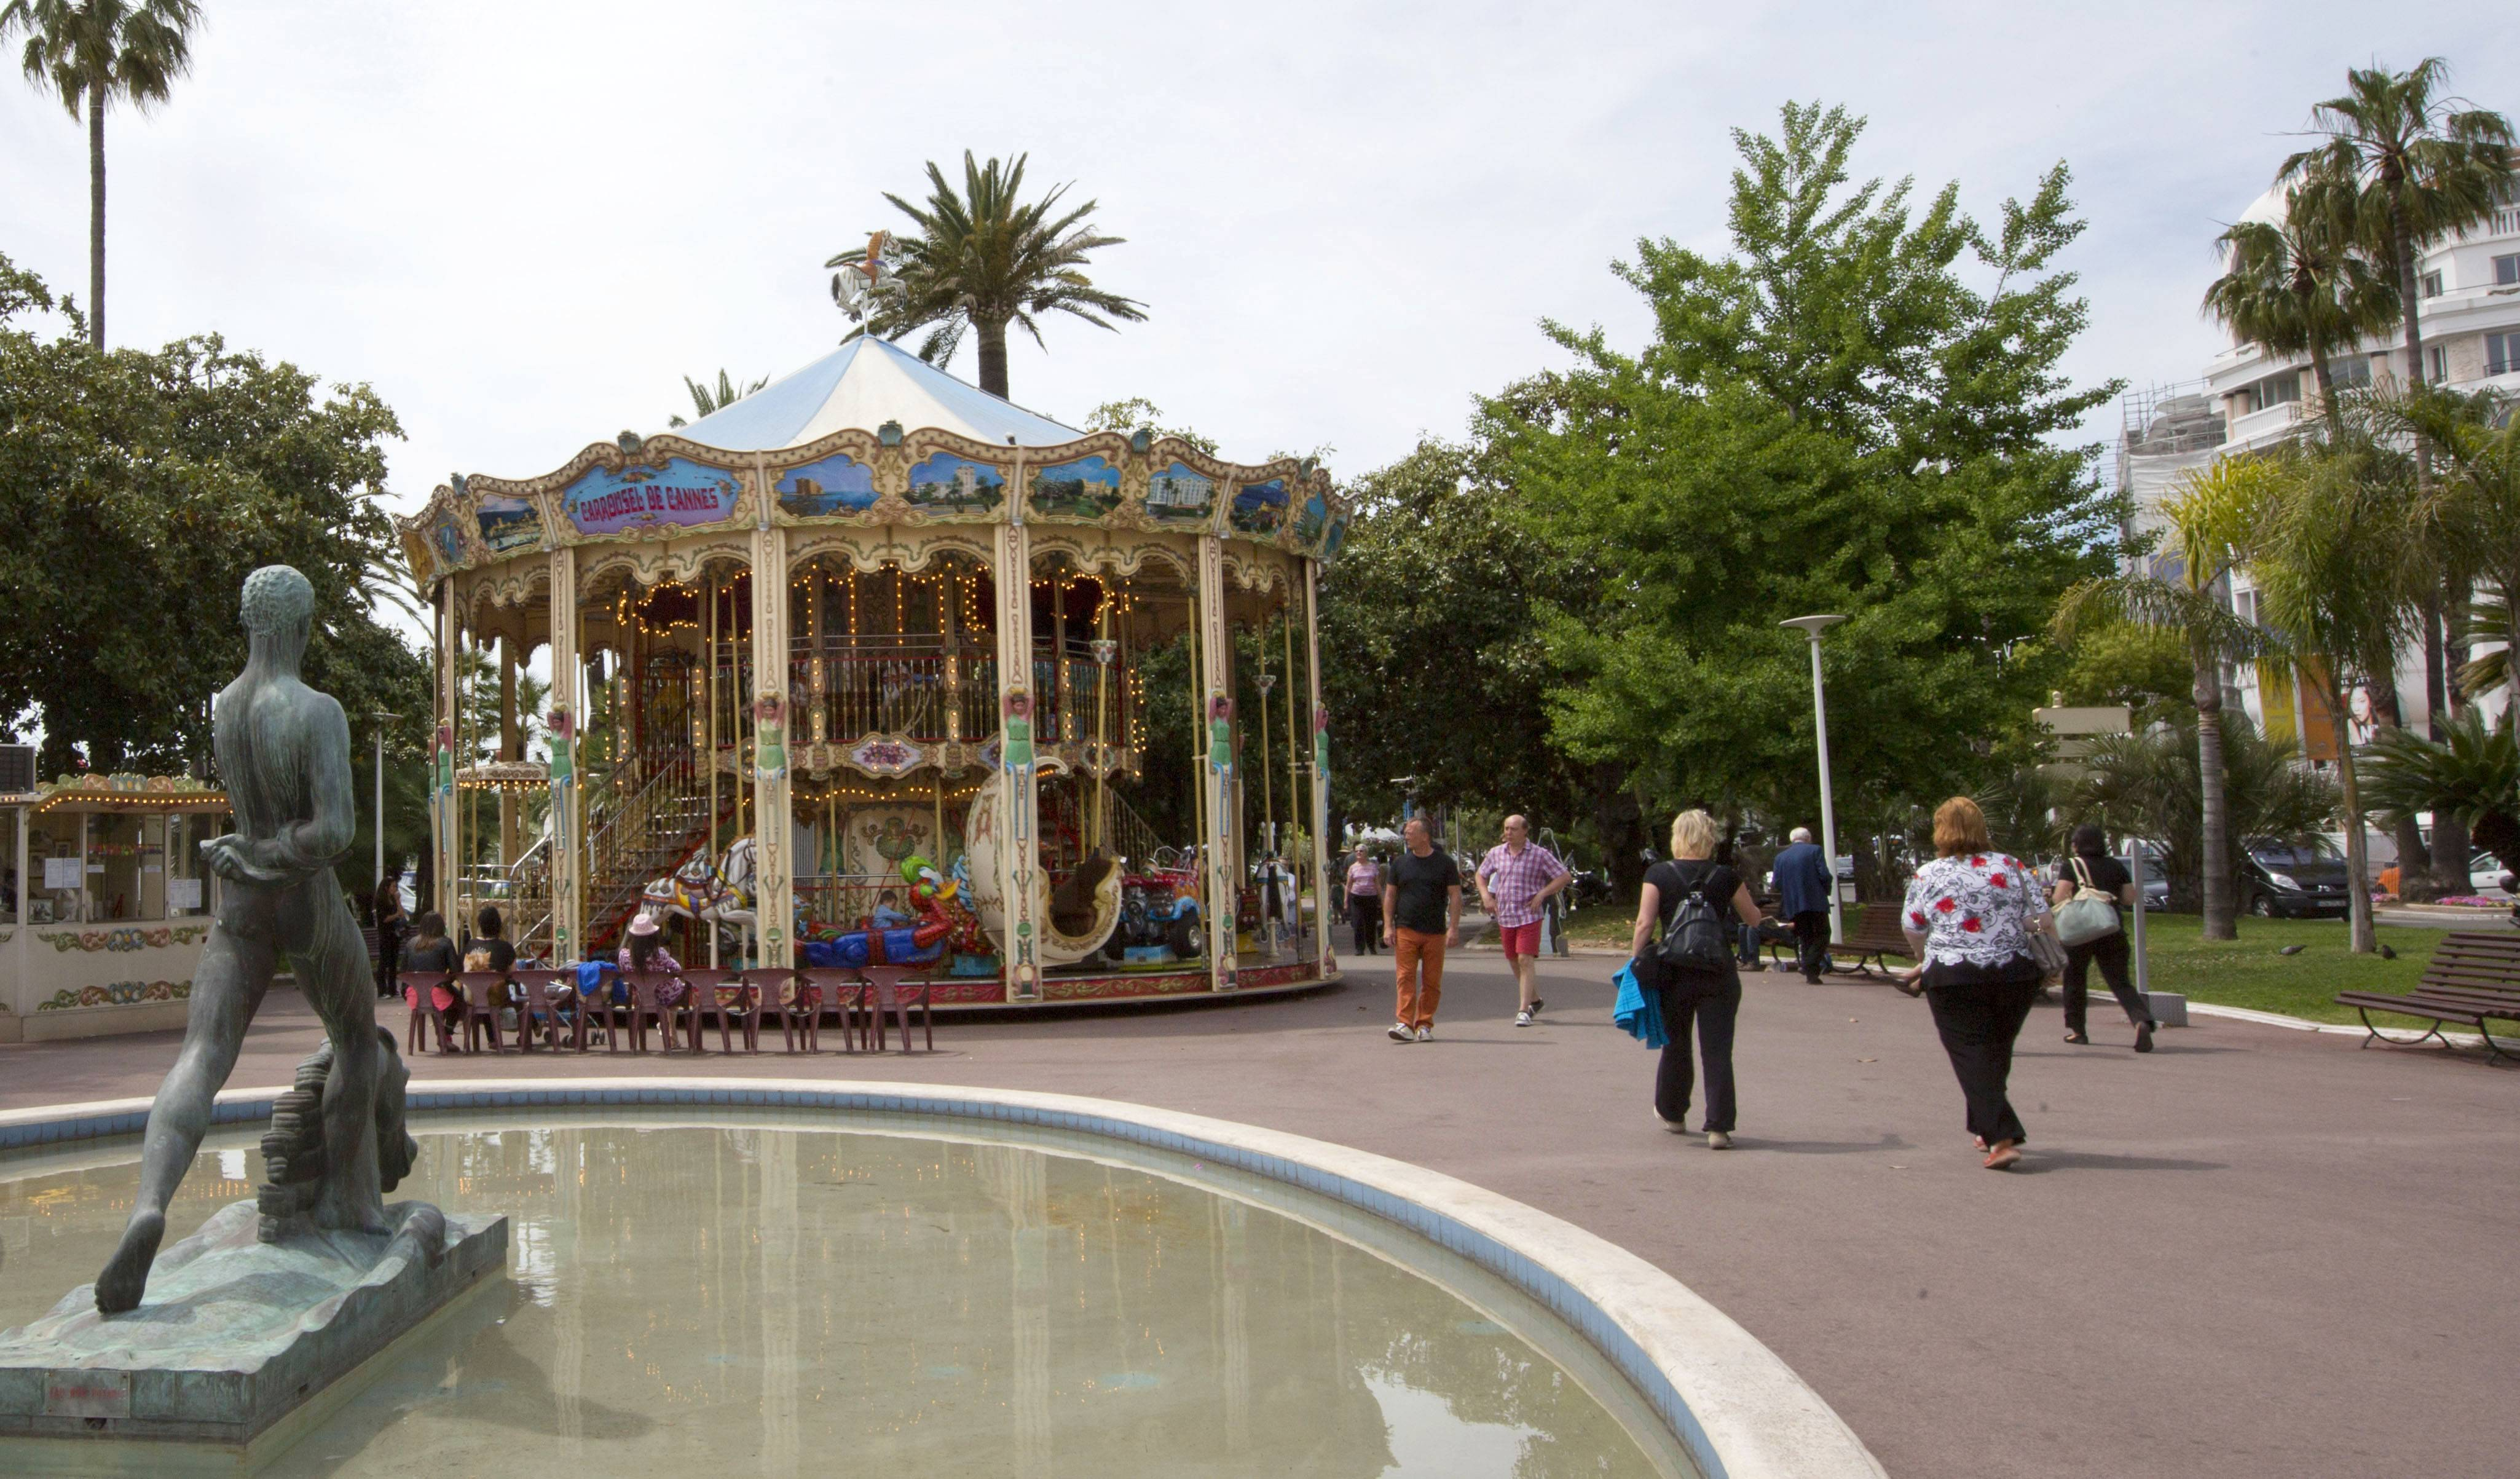 People walk in a park near a carousel in Cannes, southern France.